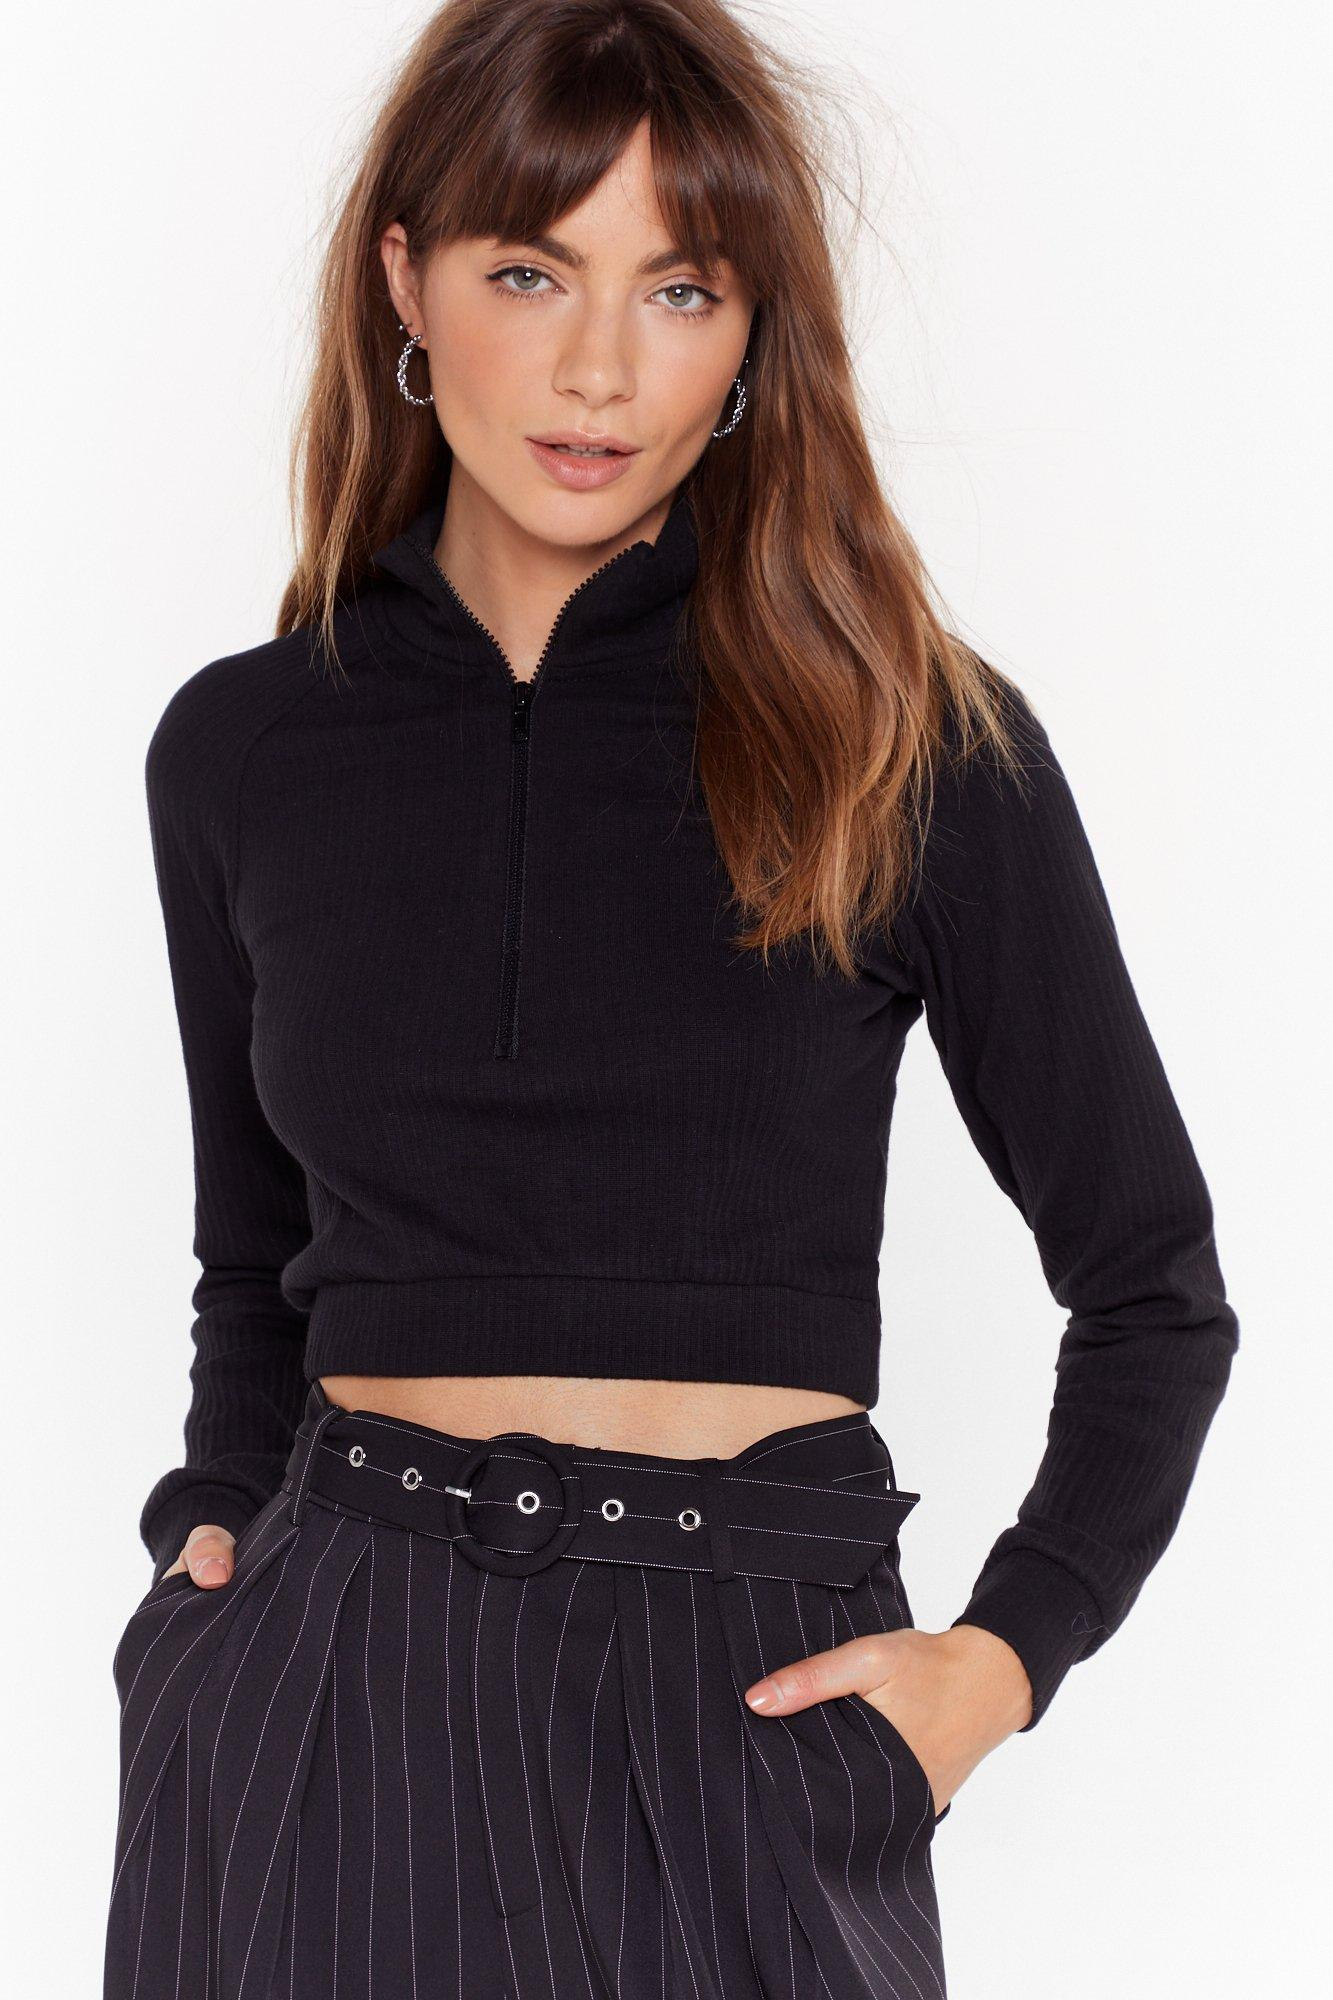 Image of Got Zip Where We Want Zip High Neck Ribbed Top